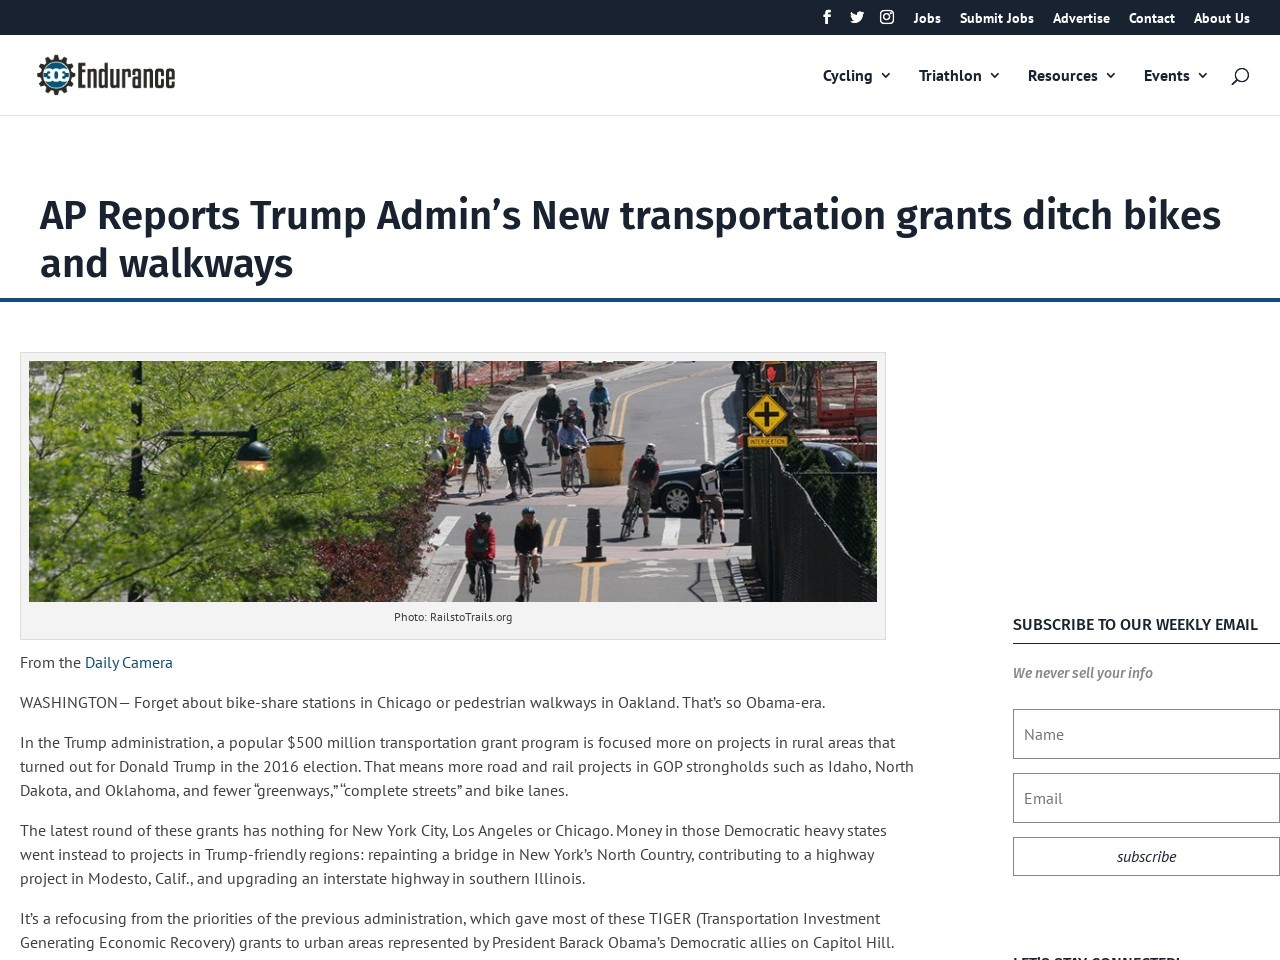 AP Reports Trump Admin's New transportation grants ditch bikes and walkways